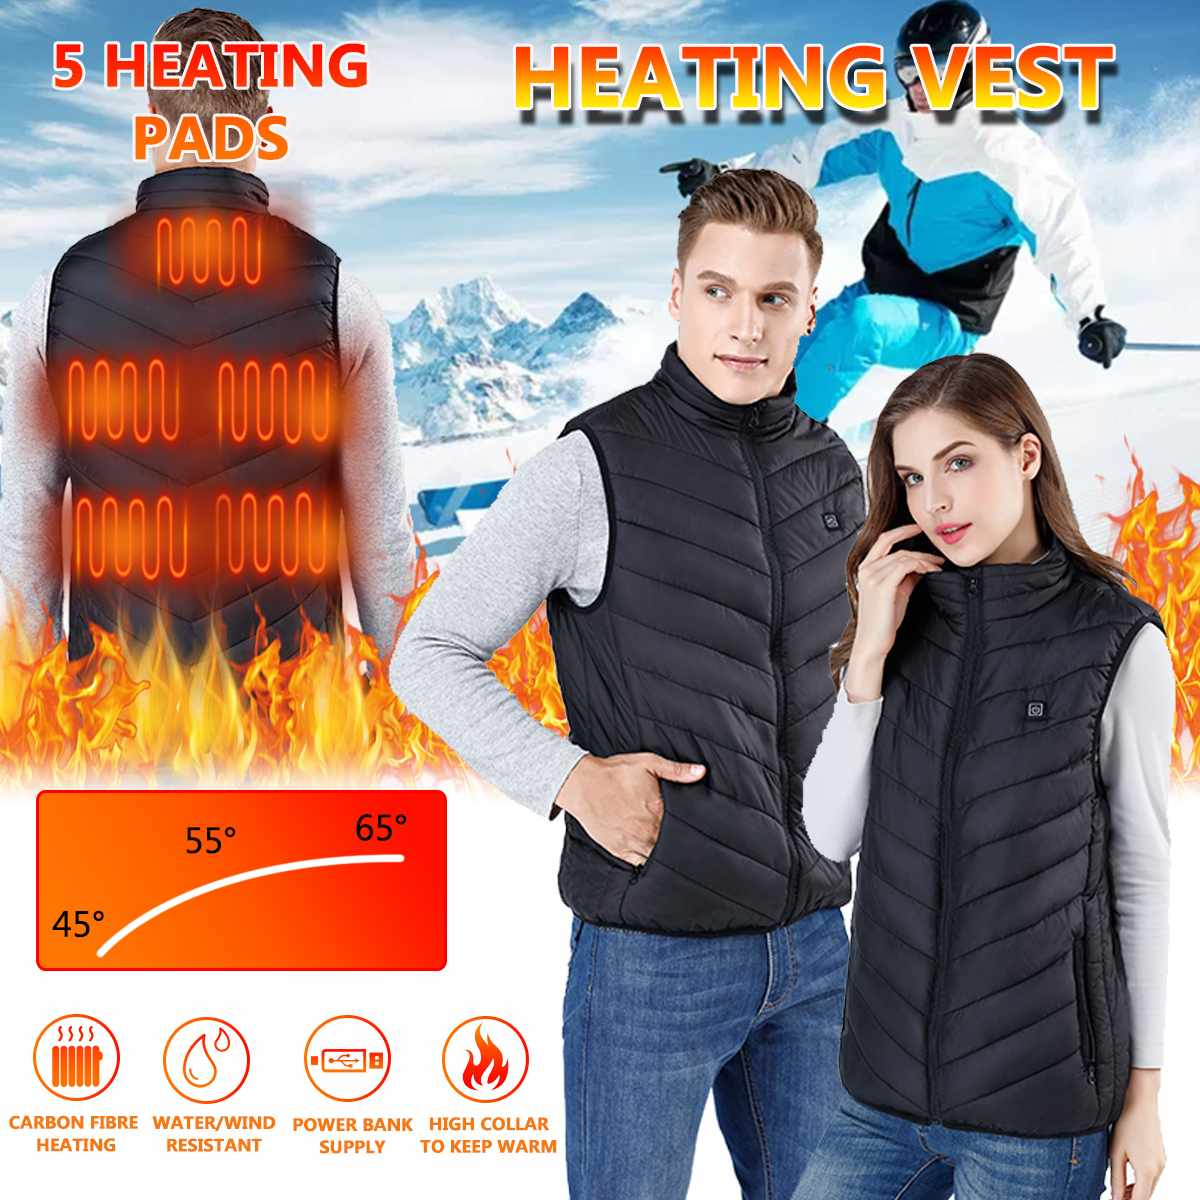 Smart Warming Heated Vests Washable Autumn Winter Male SB Electric Smart Tactical Heating Waistcoat For Hunting Camping Hiking